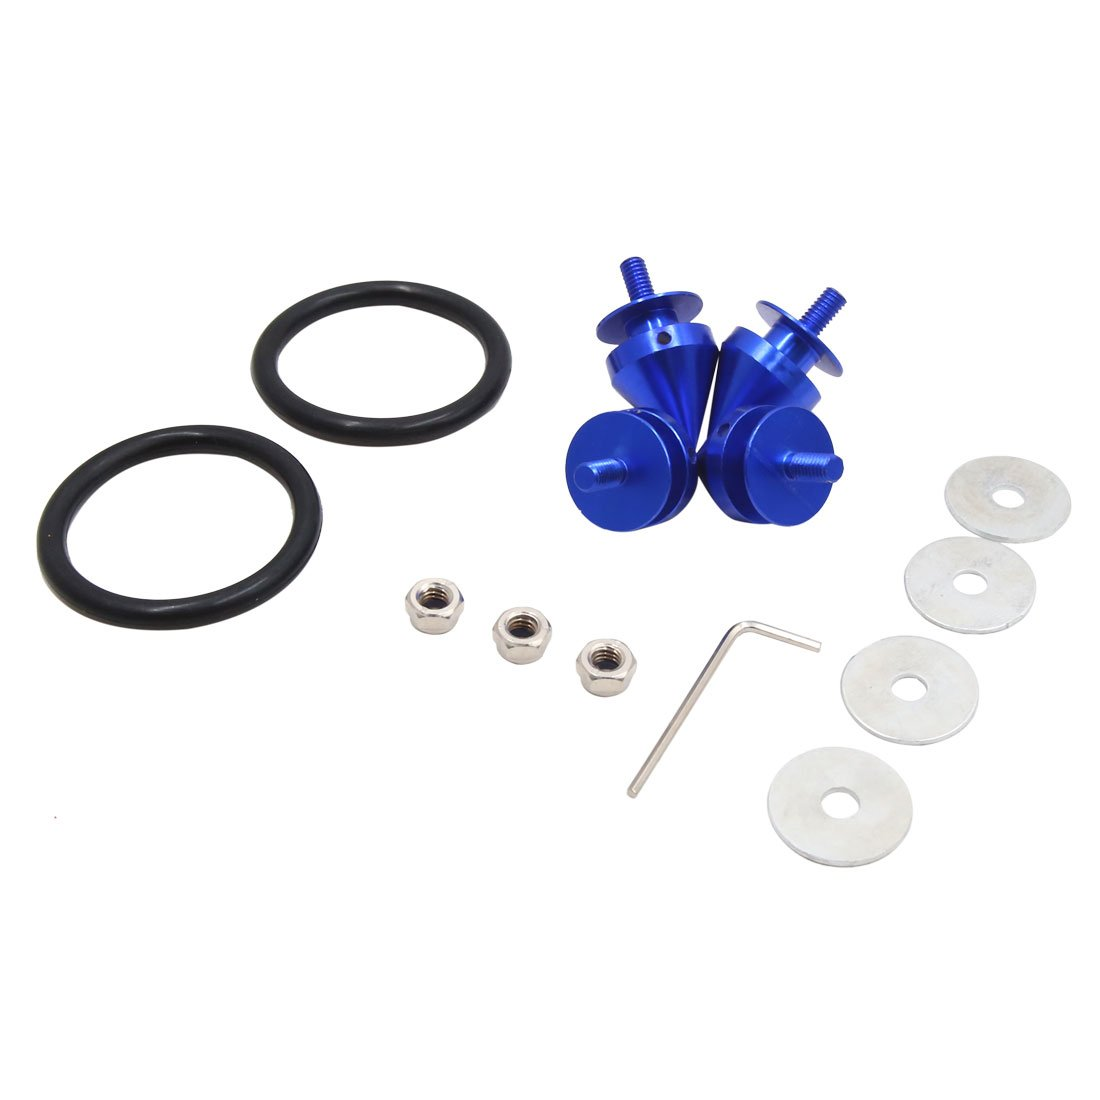 uxcell 6mm Thread Dia Car Hatch Lids Bumpers Trunk Fixed Button Fasteners Kit Blue